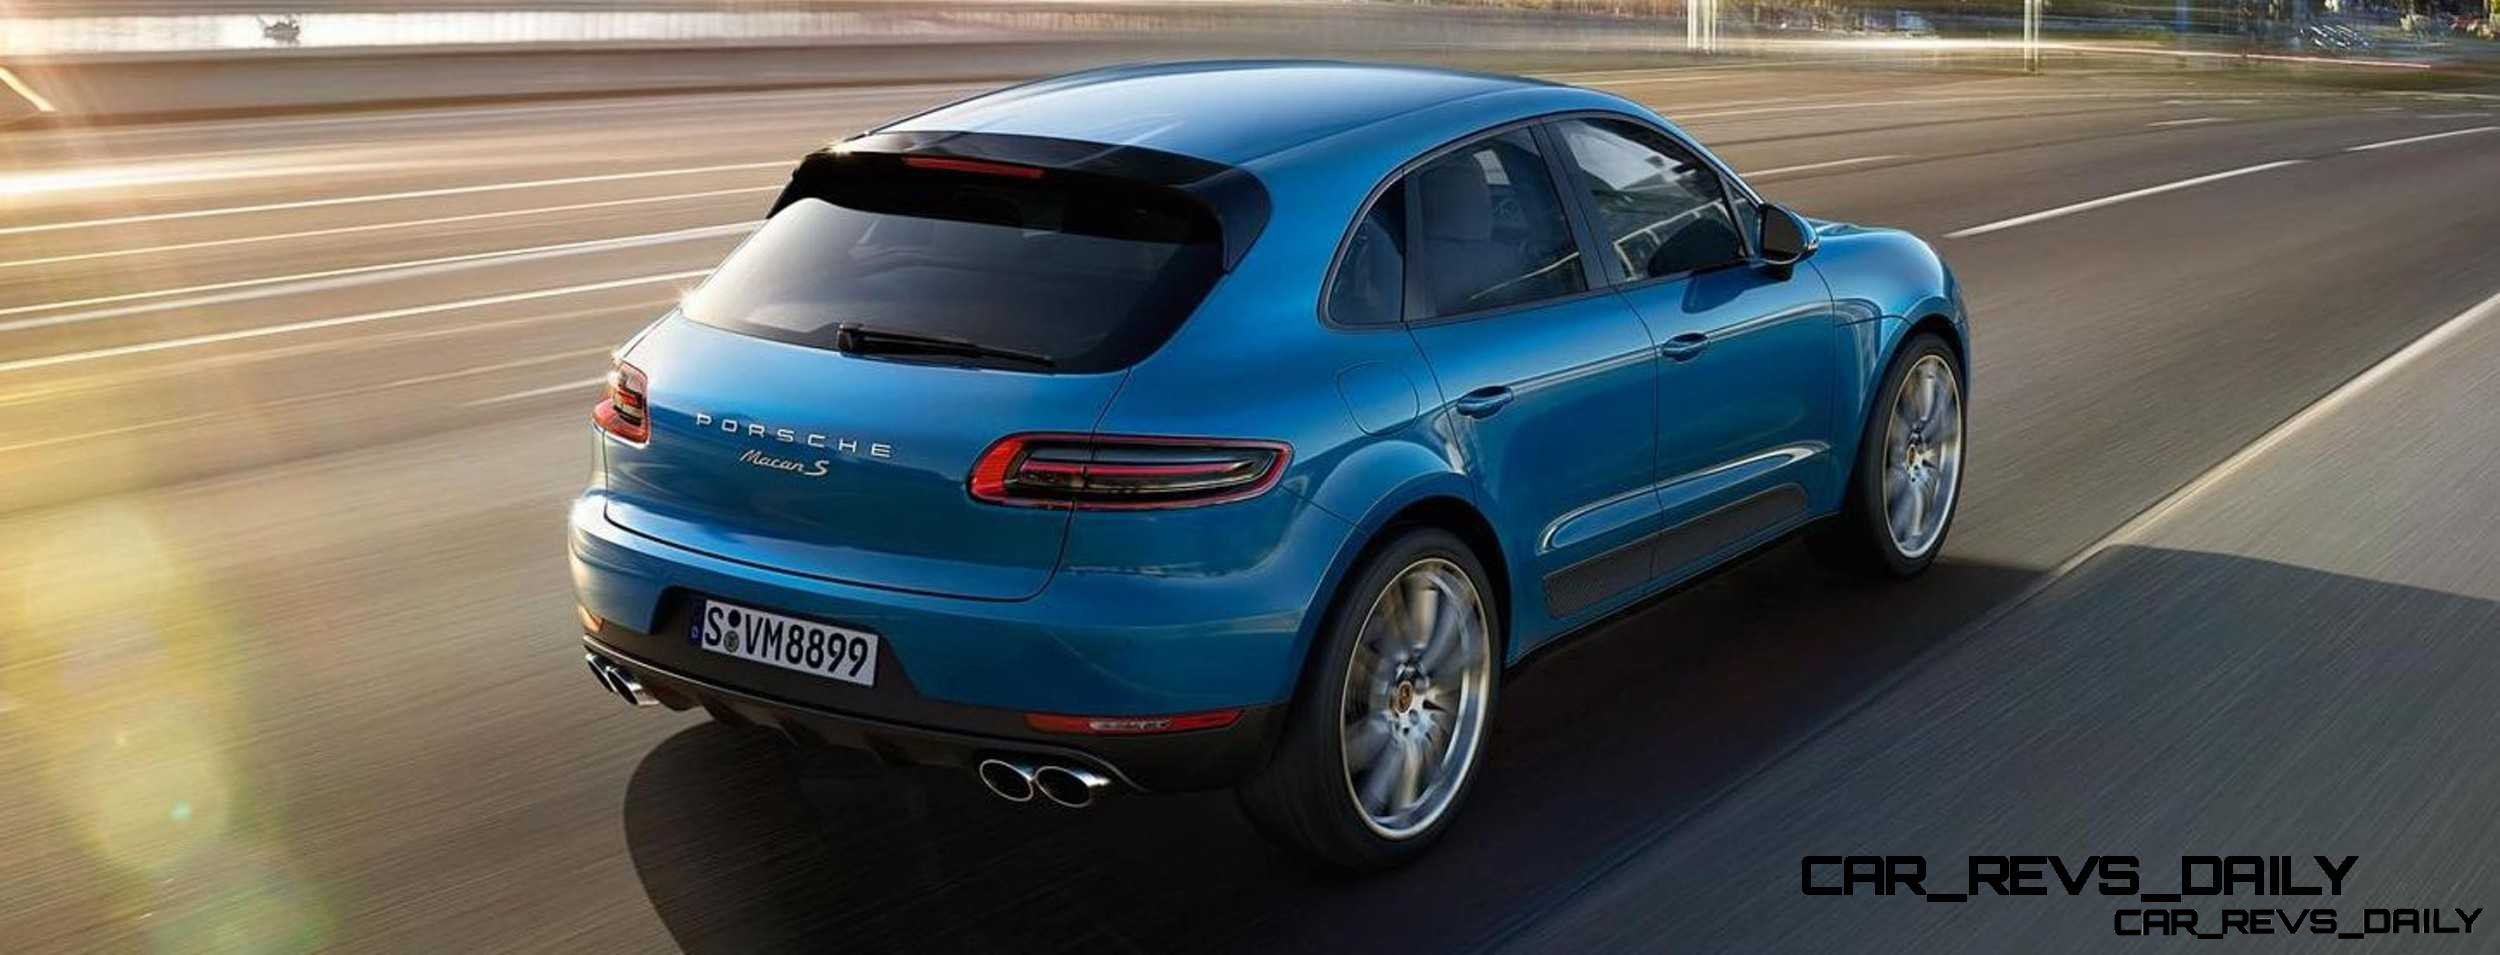 2015 Porsche Macan - Latest Images - CarRevsDaily.com 47